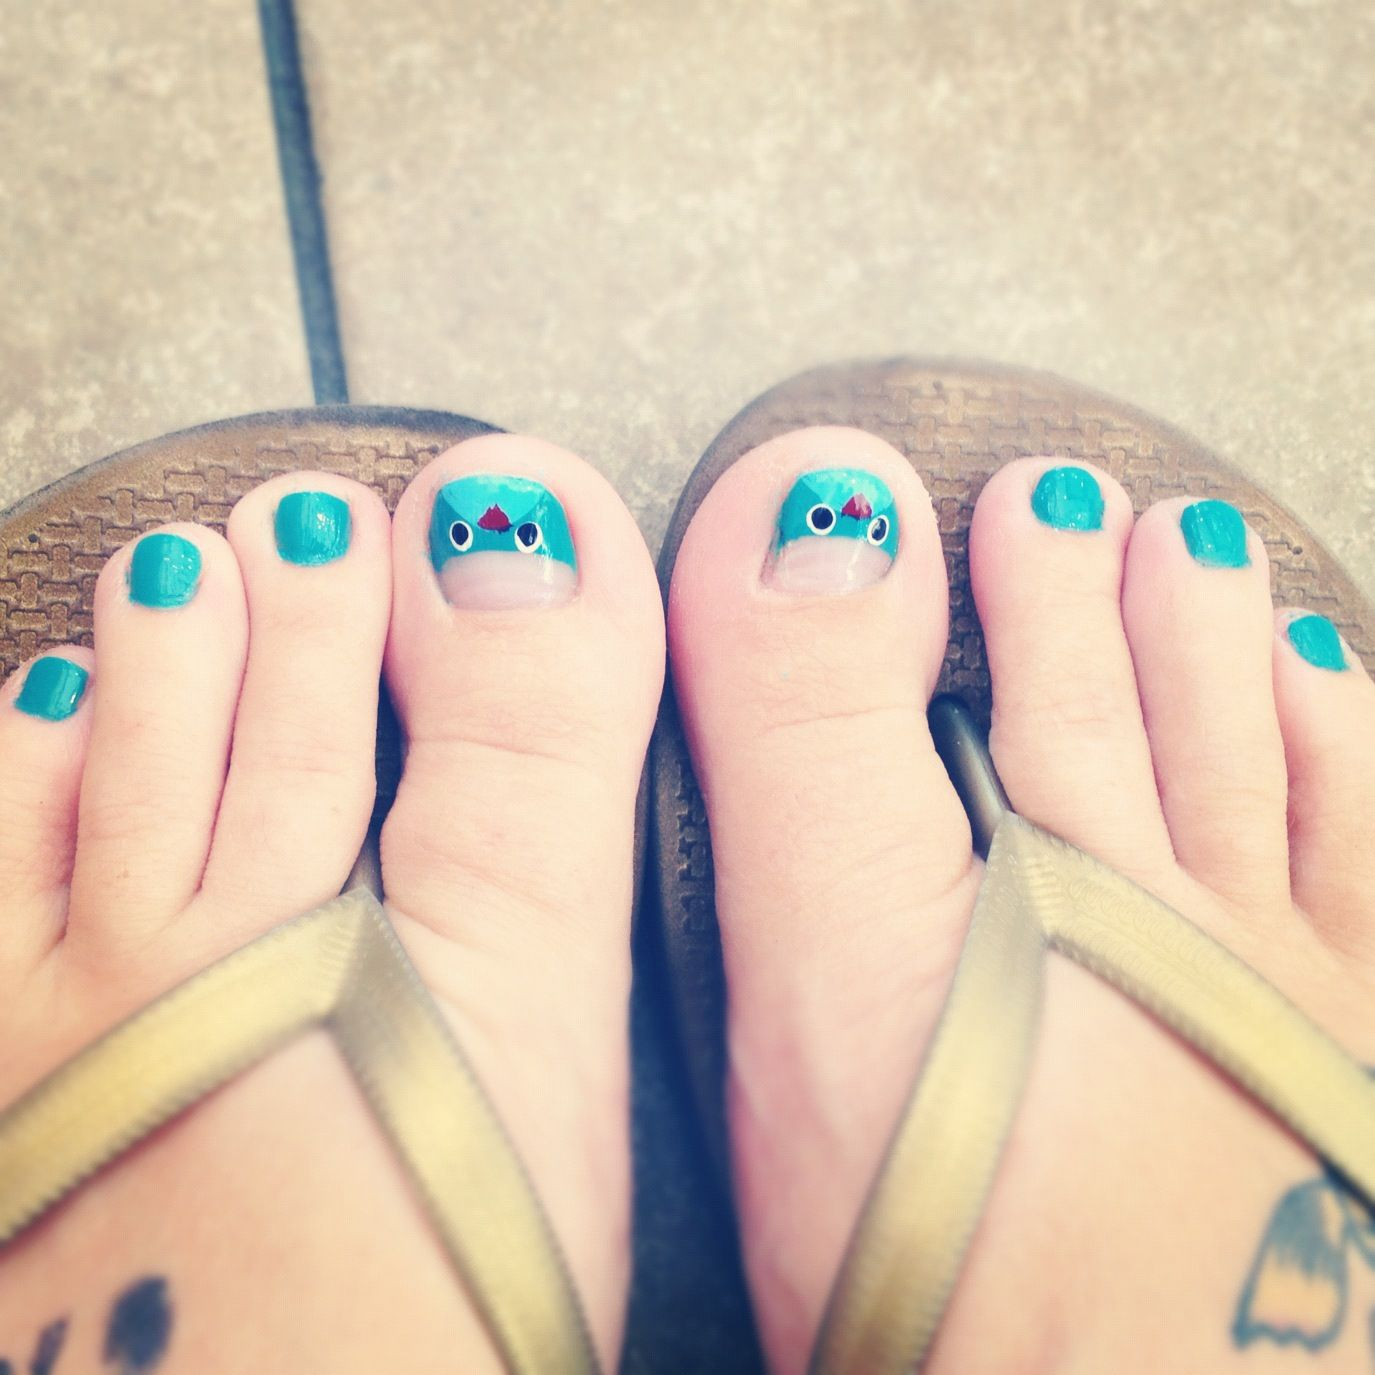 big toenail design bird - Google Search | Nails | Pinterest | Toe ...